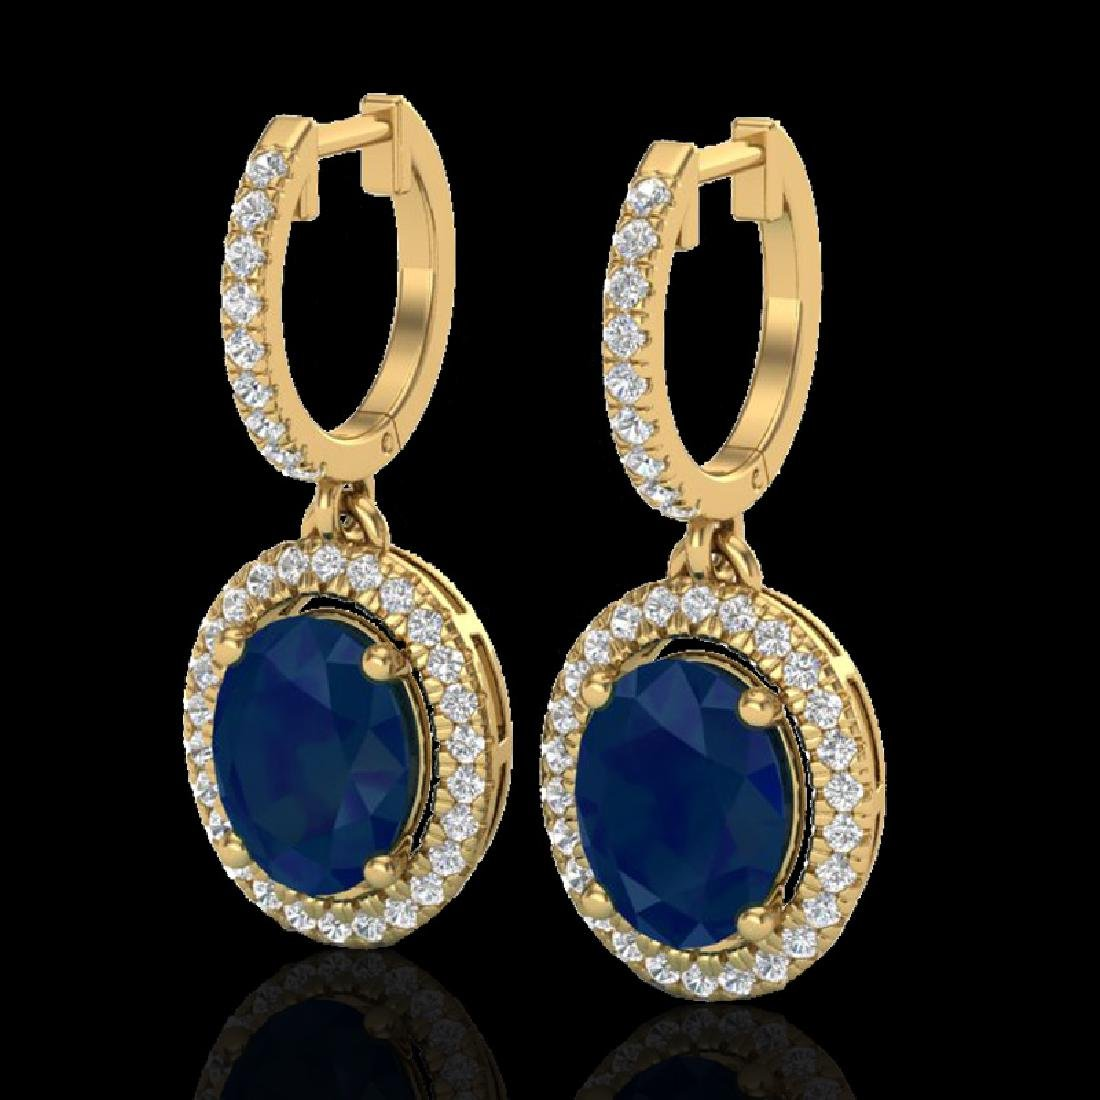 4.25 CTW Sapphire & Micro Pave VS/SI Diamond Earrings